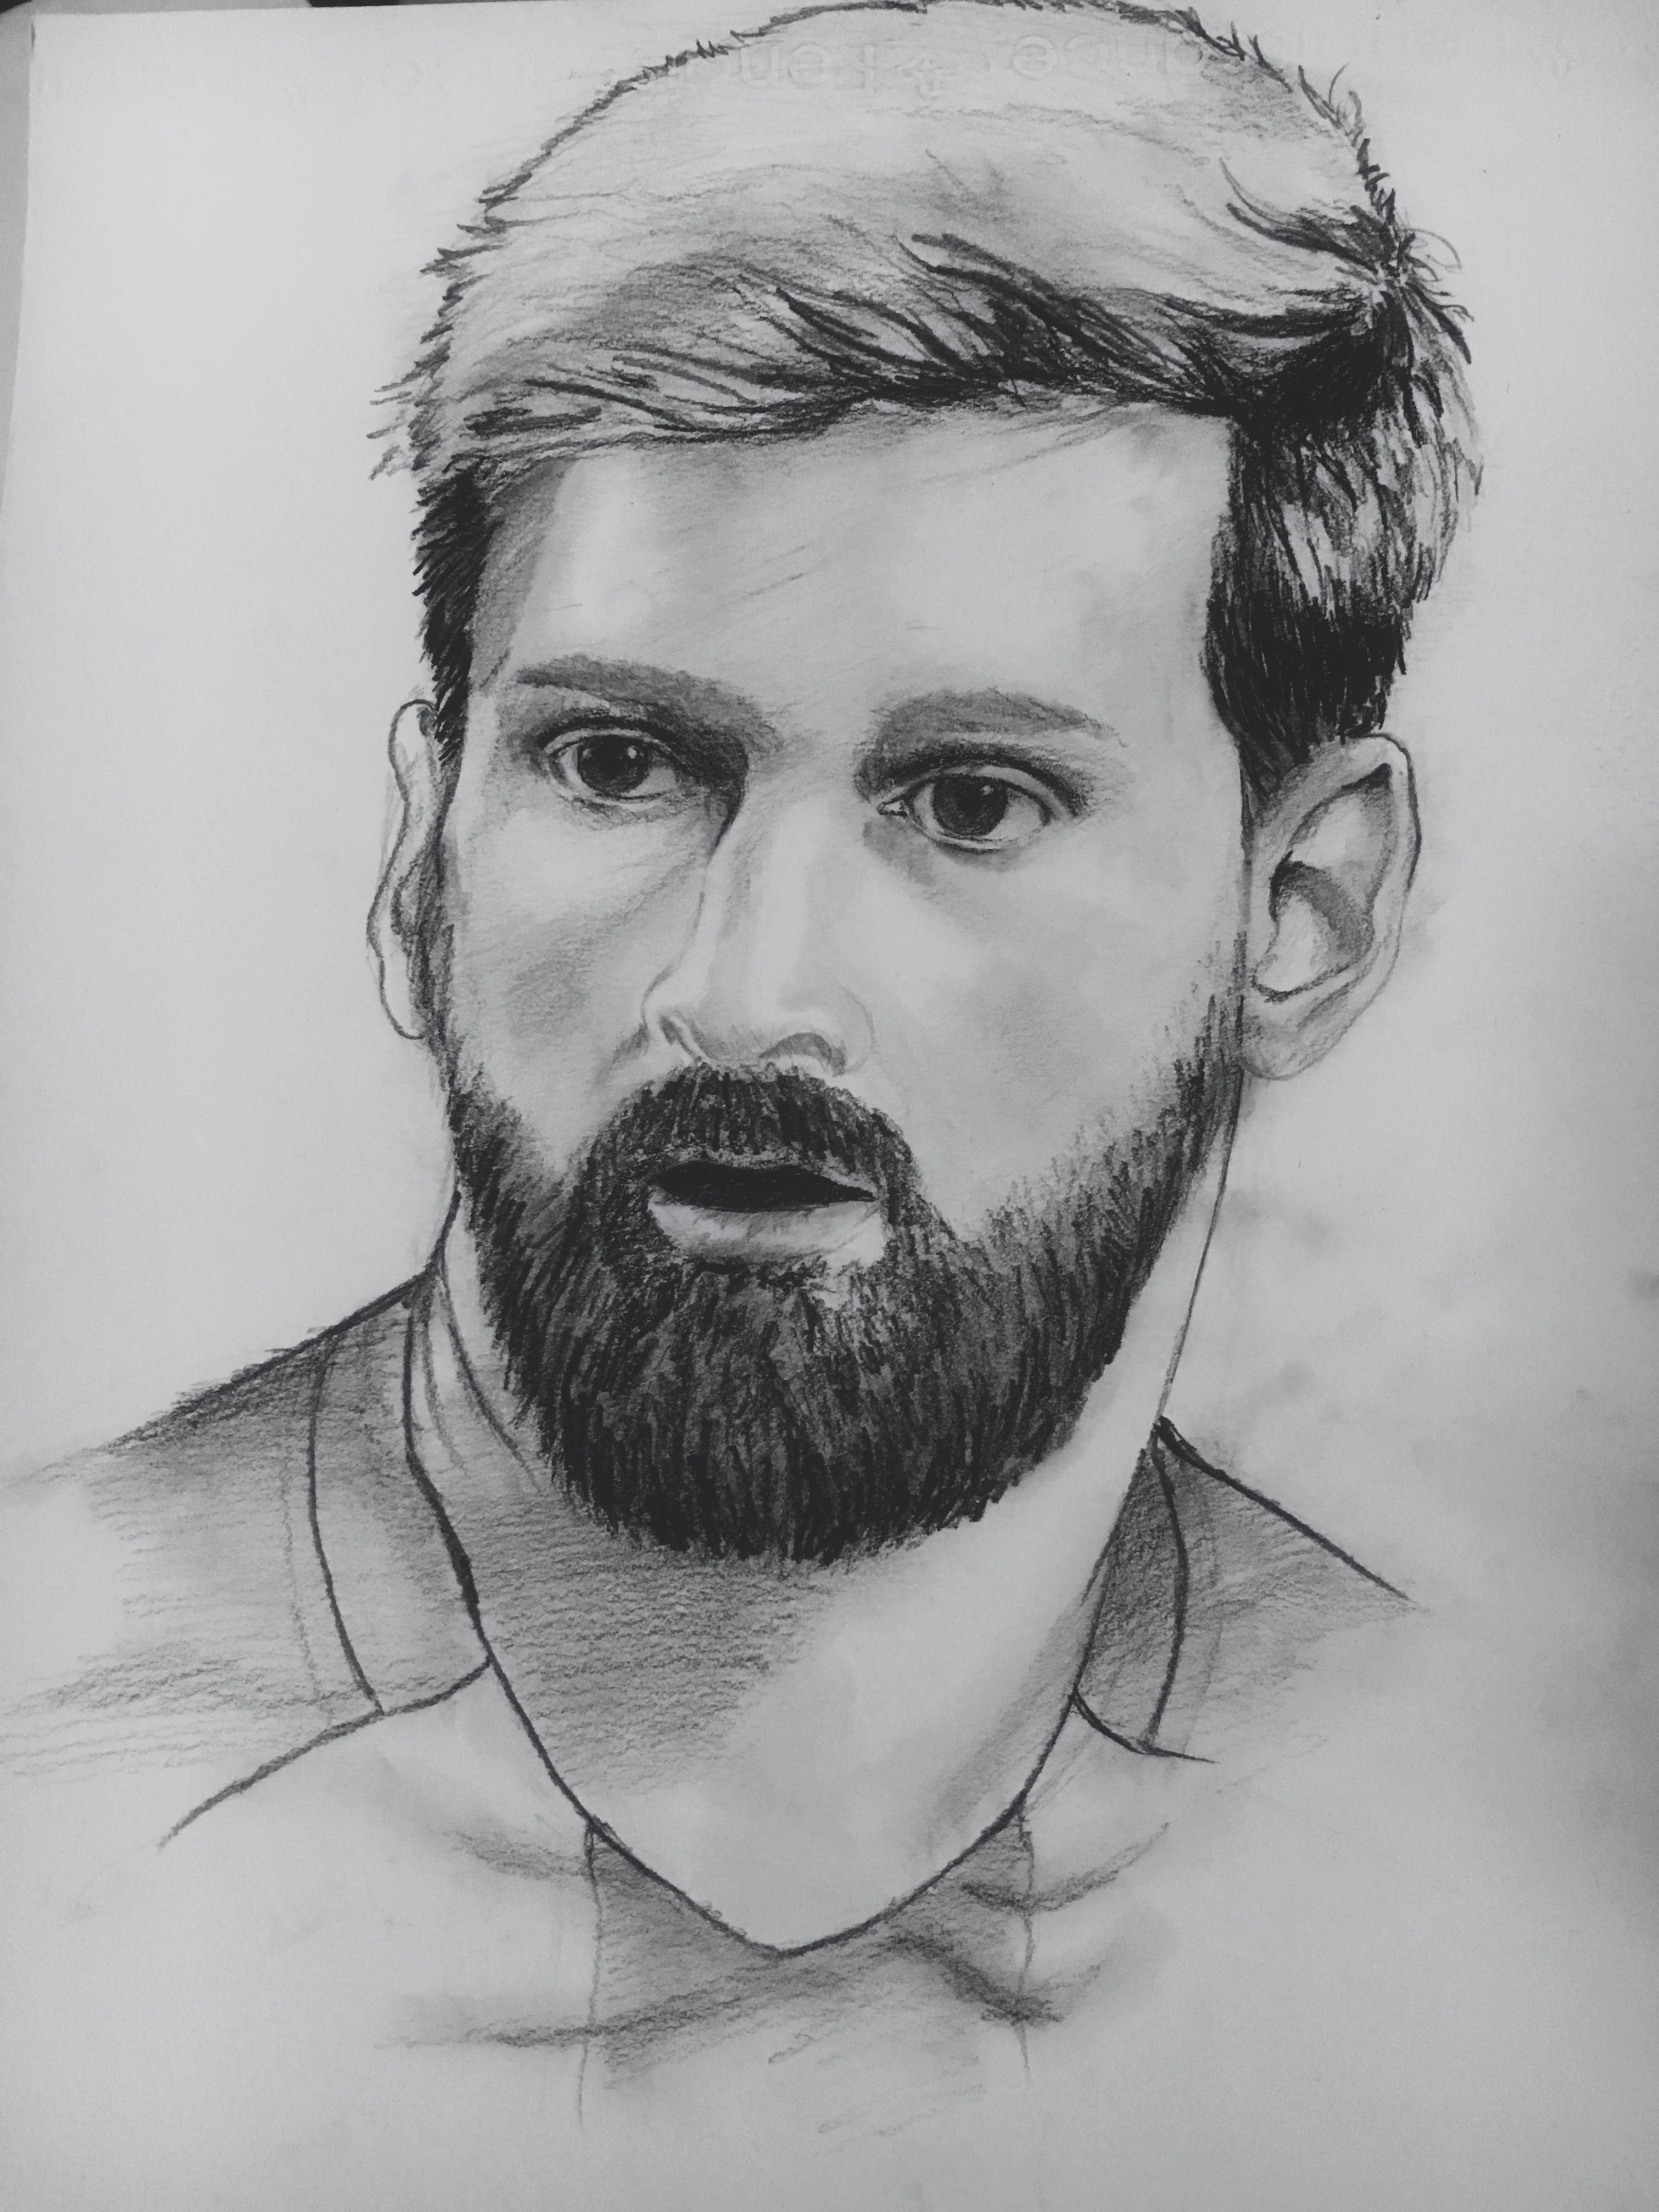 Messi drawing messi marvel my drawings portraits drawings portrait paintings